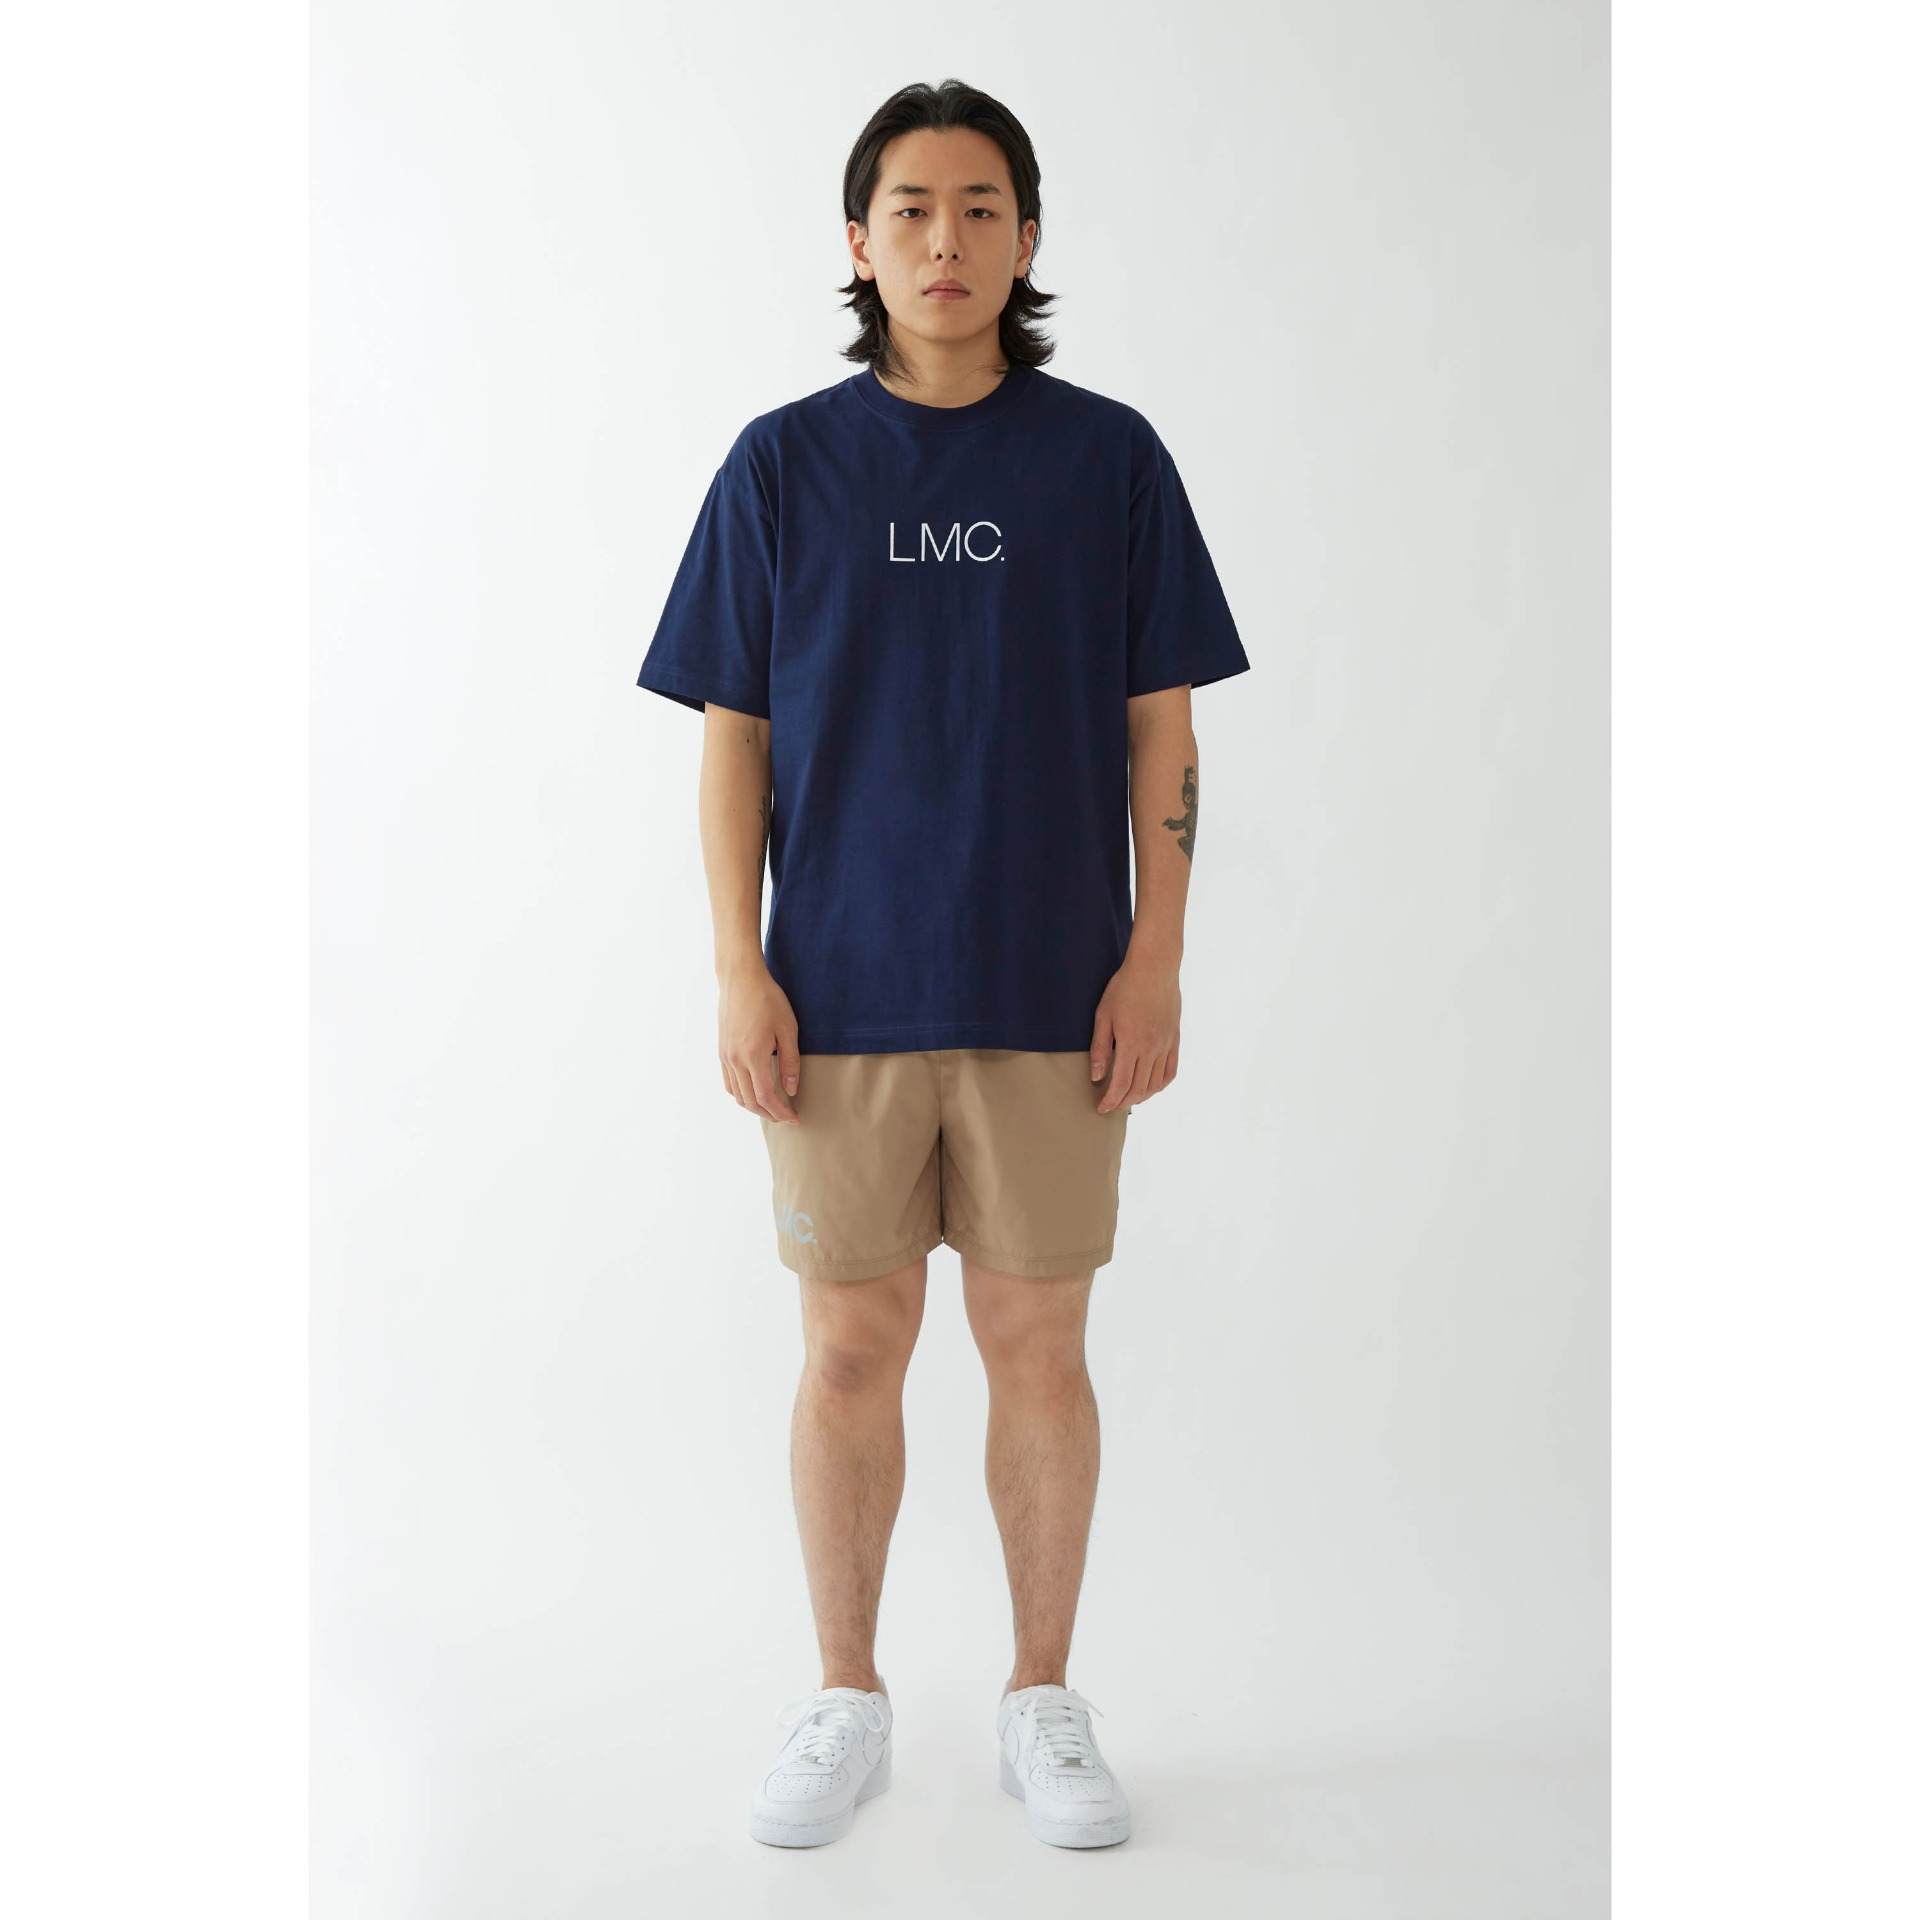 LMC THIN LOGO TEE navy